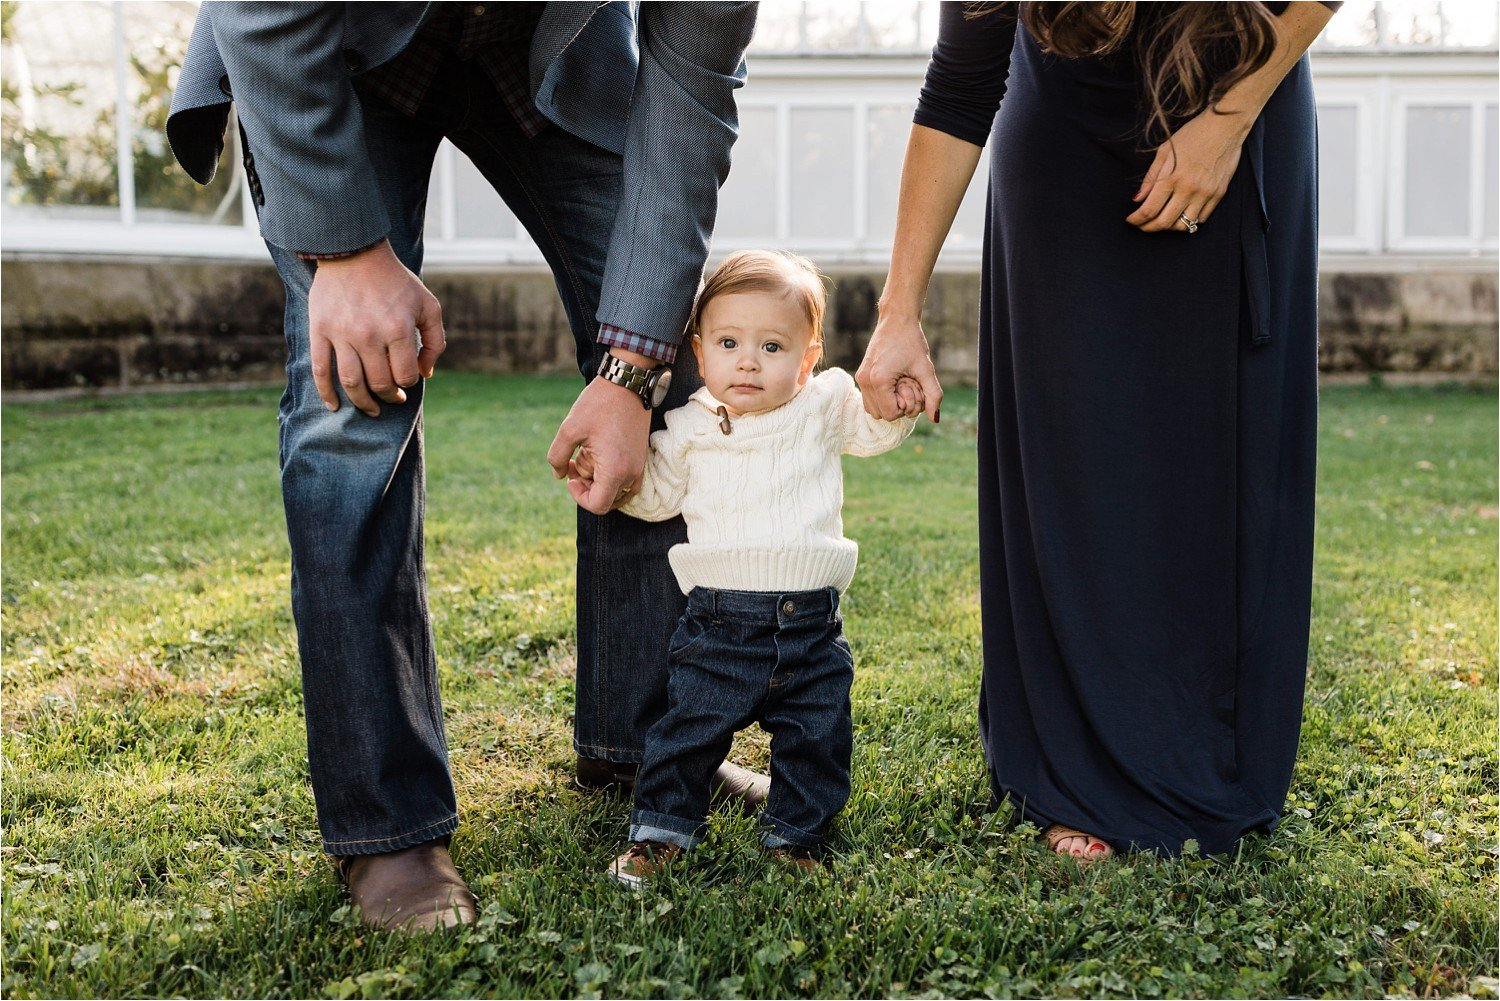 6 month old standing between parents holding hands